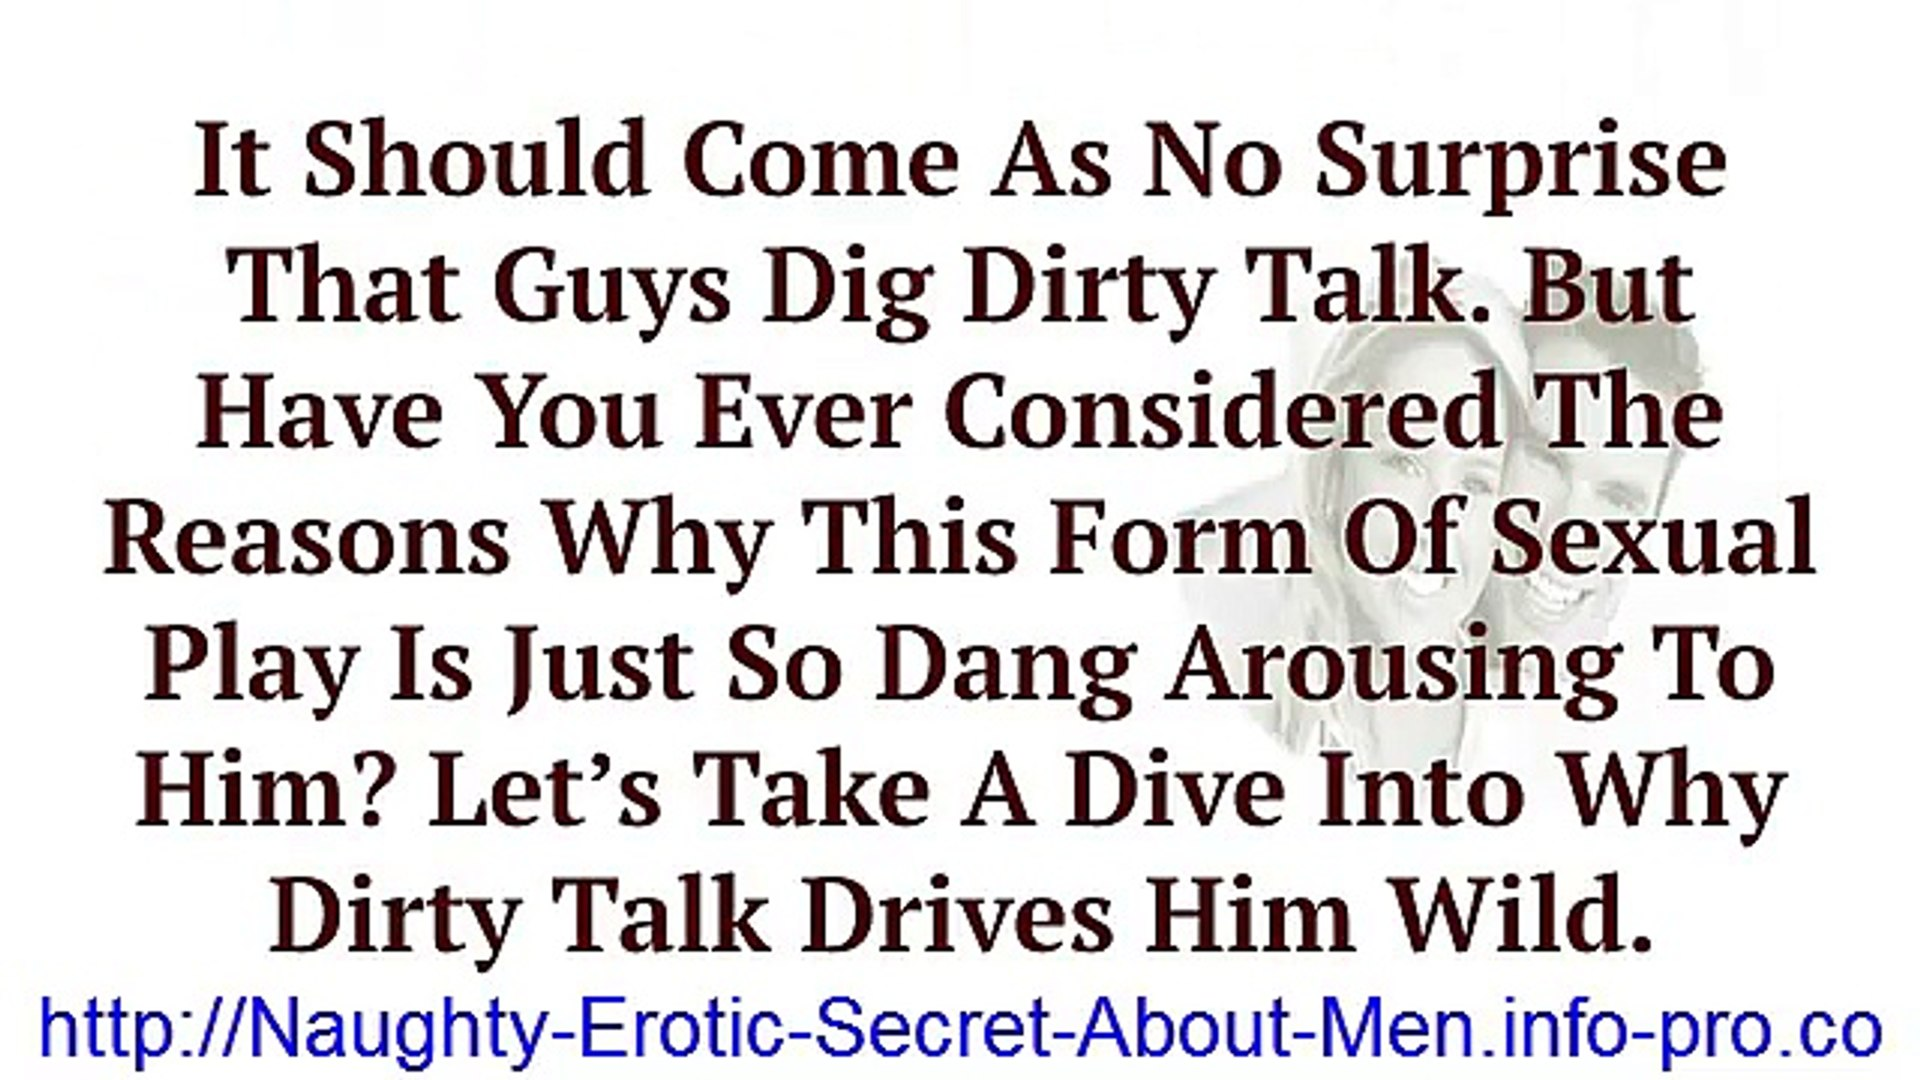 How To Keep A Man, How To Spice Up The Bedroom For Him, How To Talk Dirty To A Guy In Bed